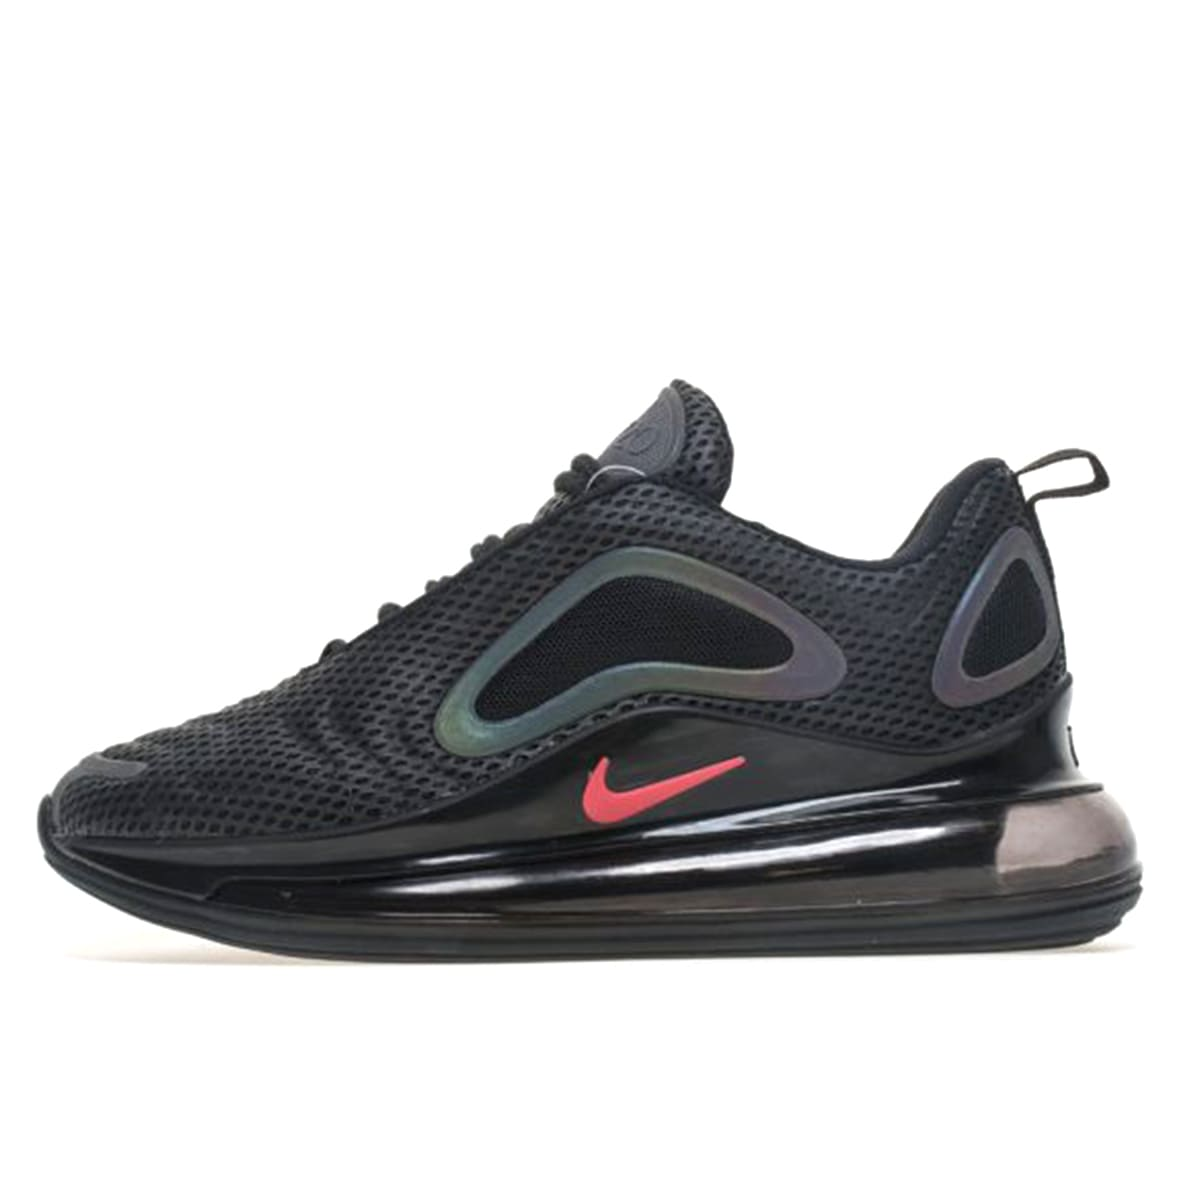 Nike Air Max 720 sneakers for men